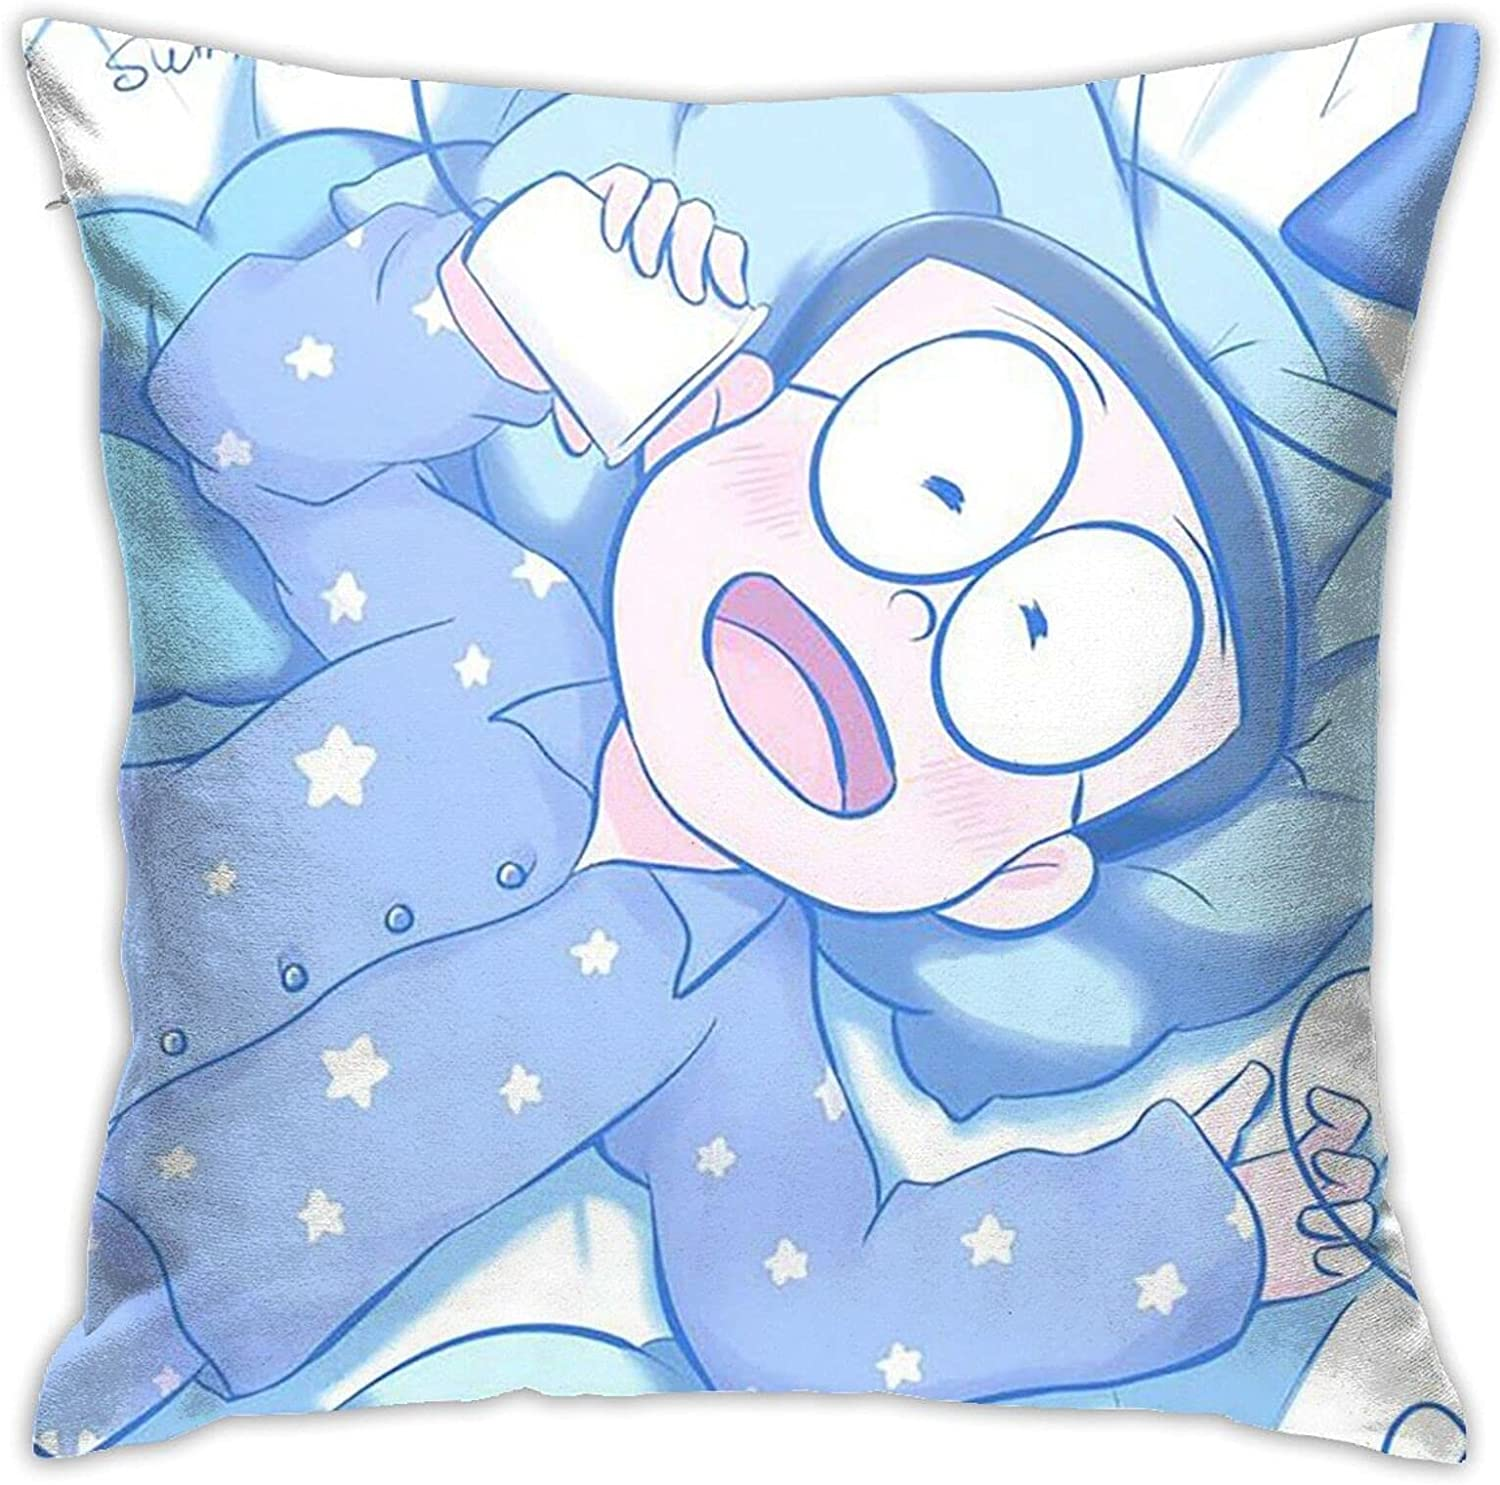 Doraemon Pillow Covers Gifts Decorative P Los Angeles Mall Case Cozy Max 87% OFF Throw